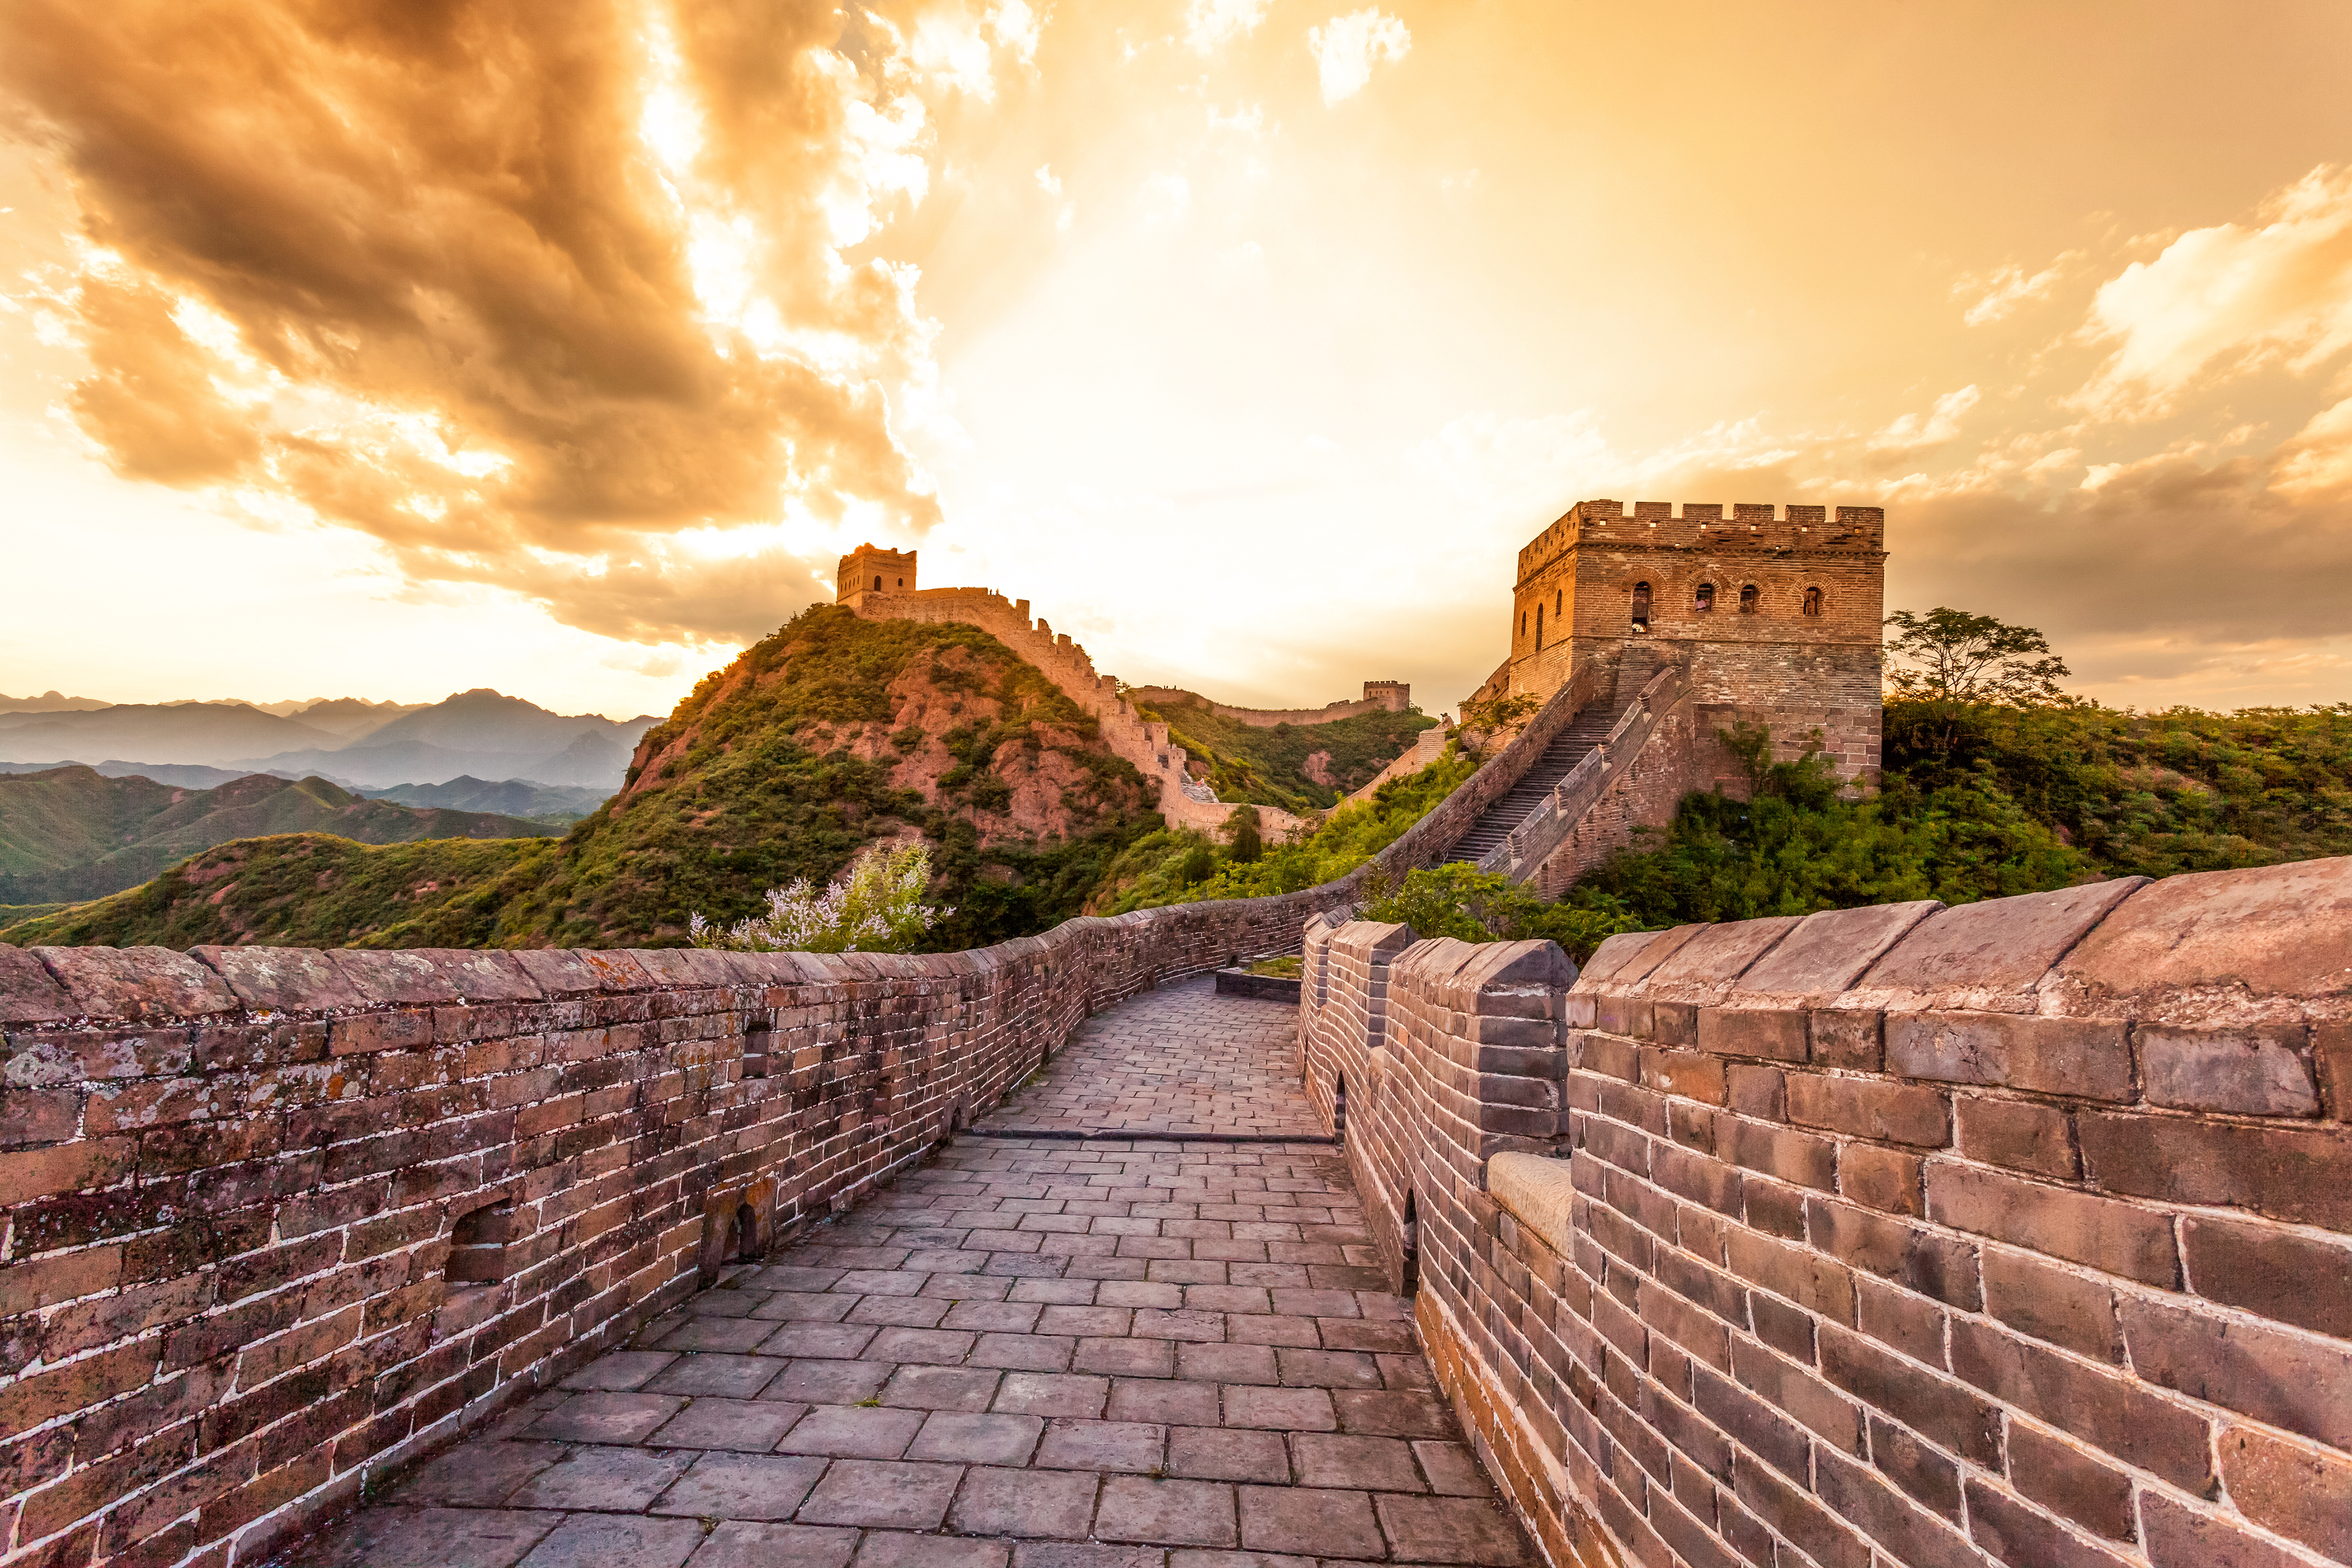 Picture from the Great Wall in China